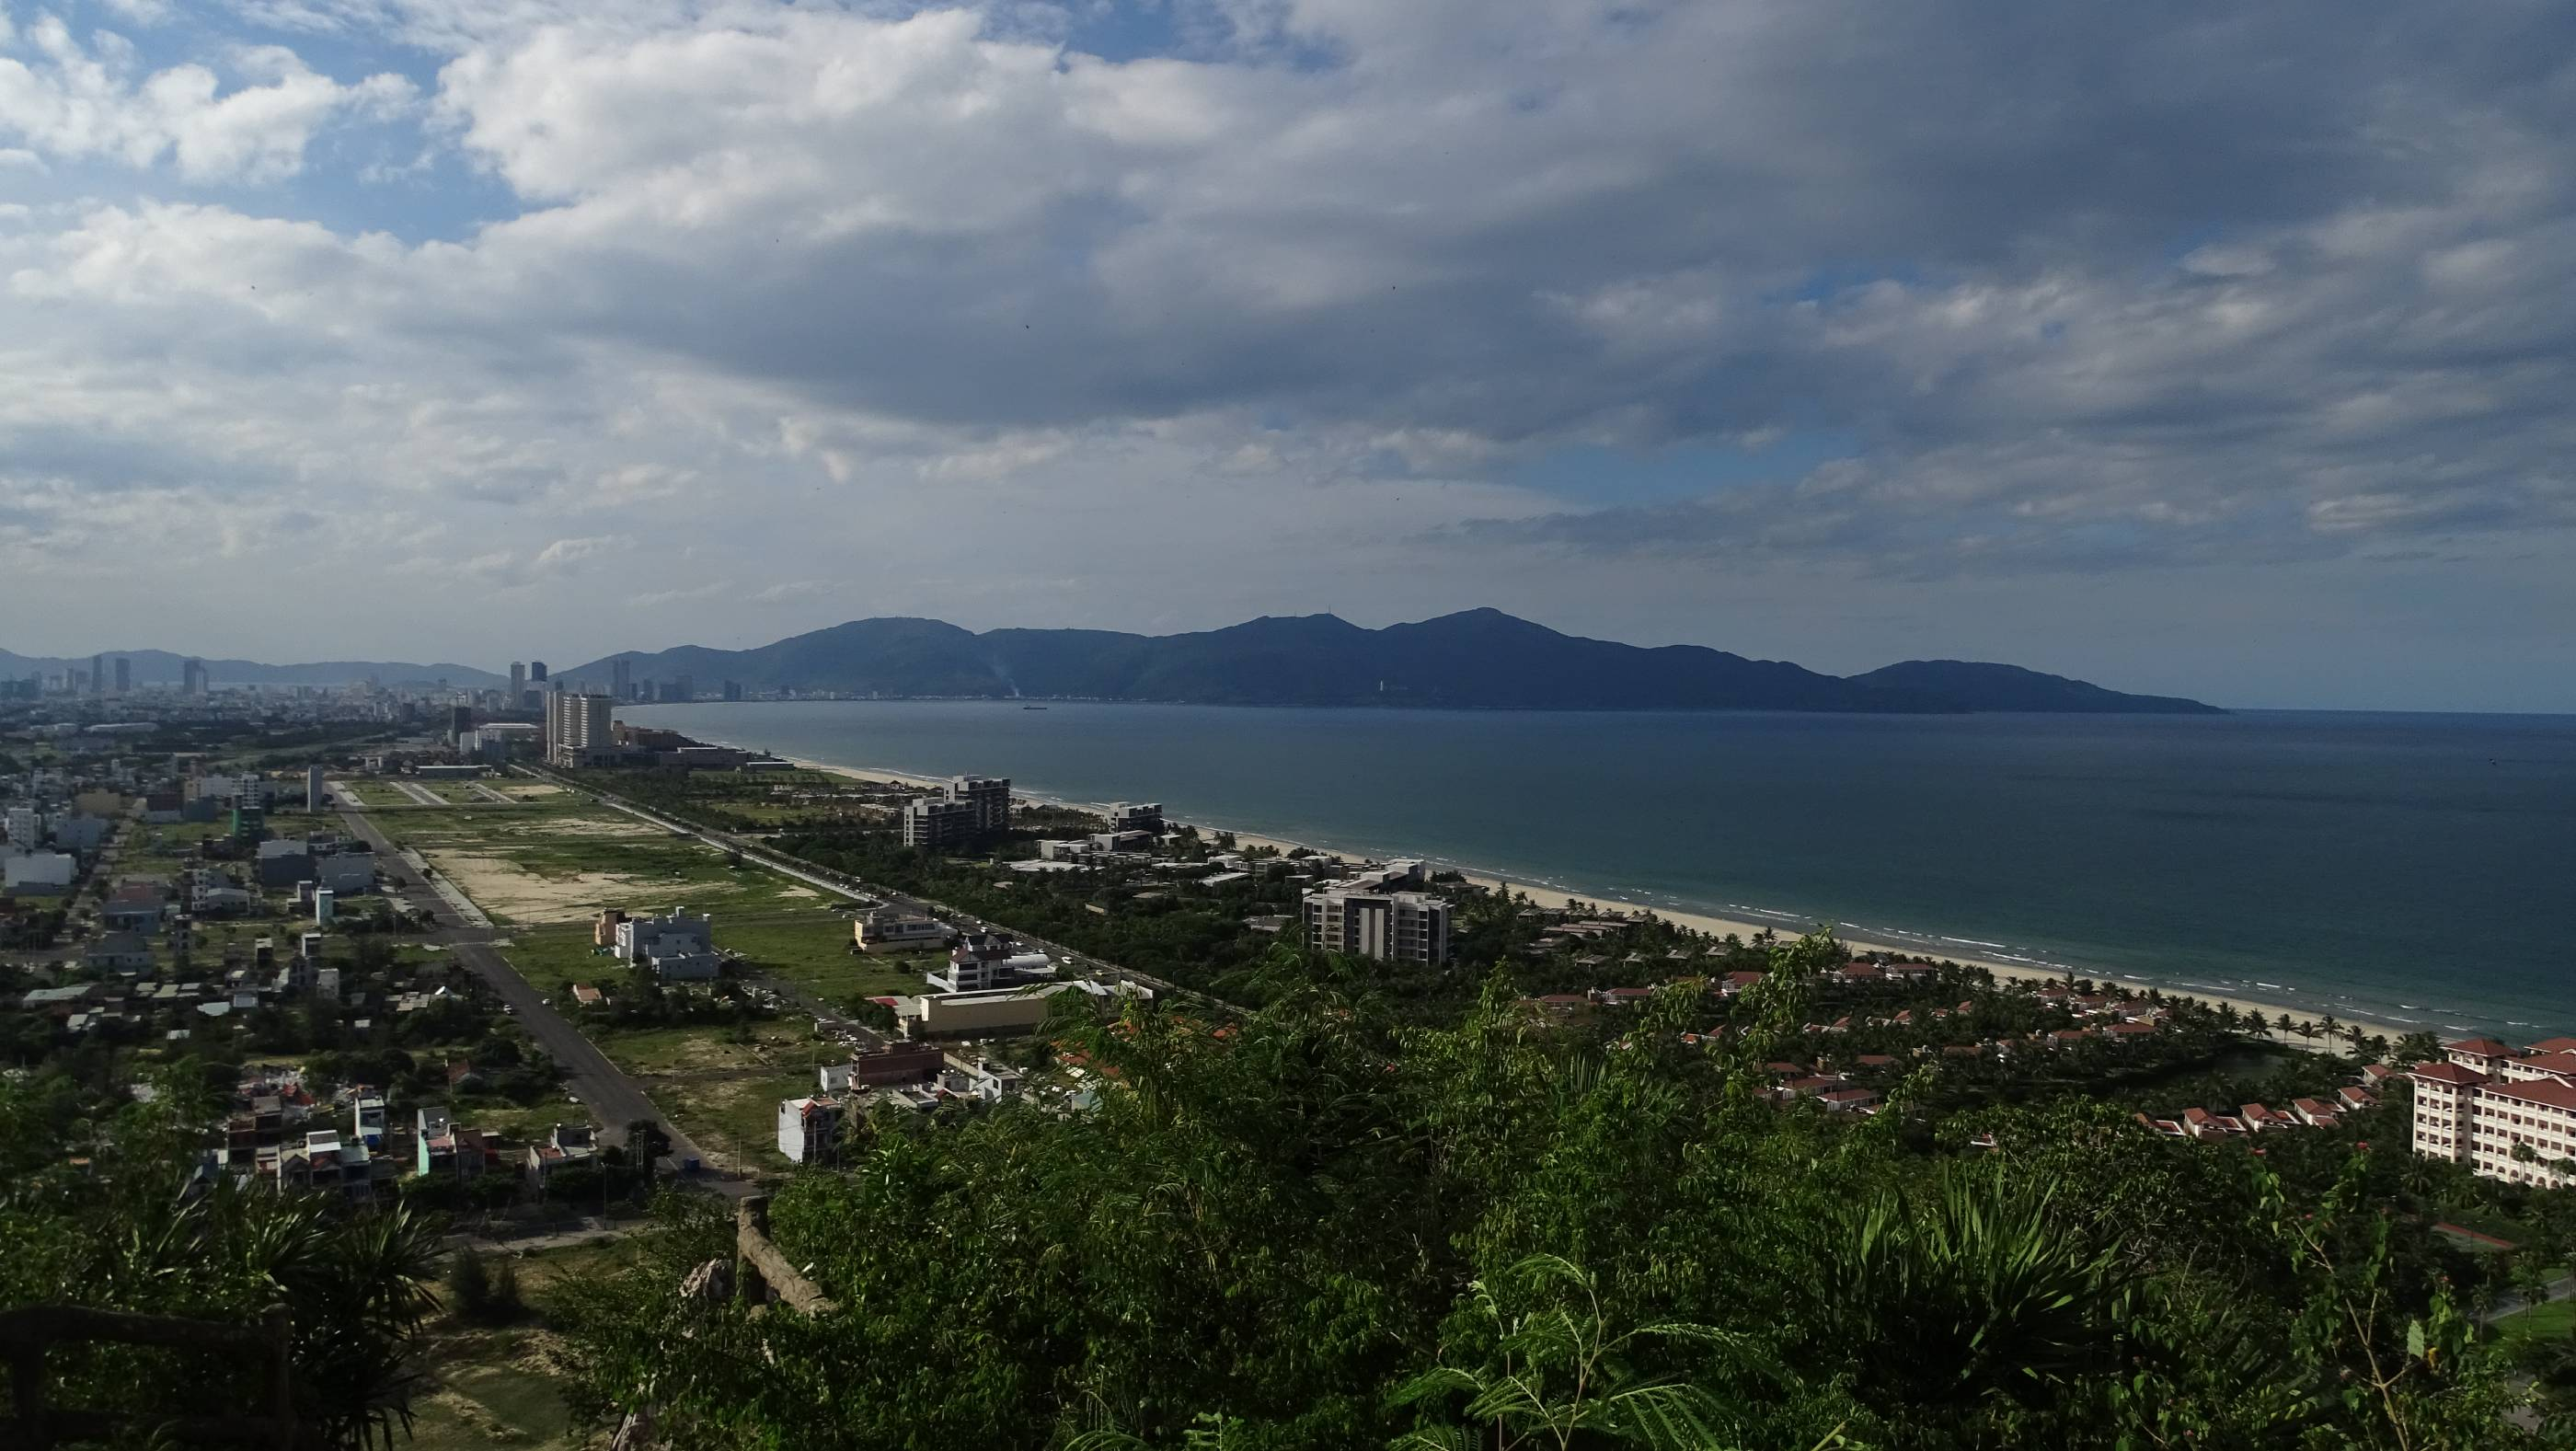 The panoramic views of the sea and Da Nang city from the viewpoint on the top of Water Mountain